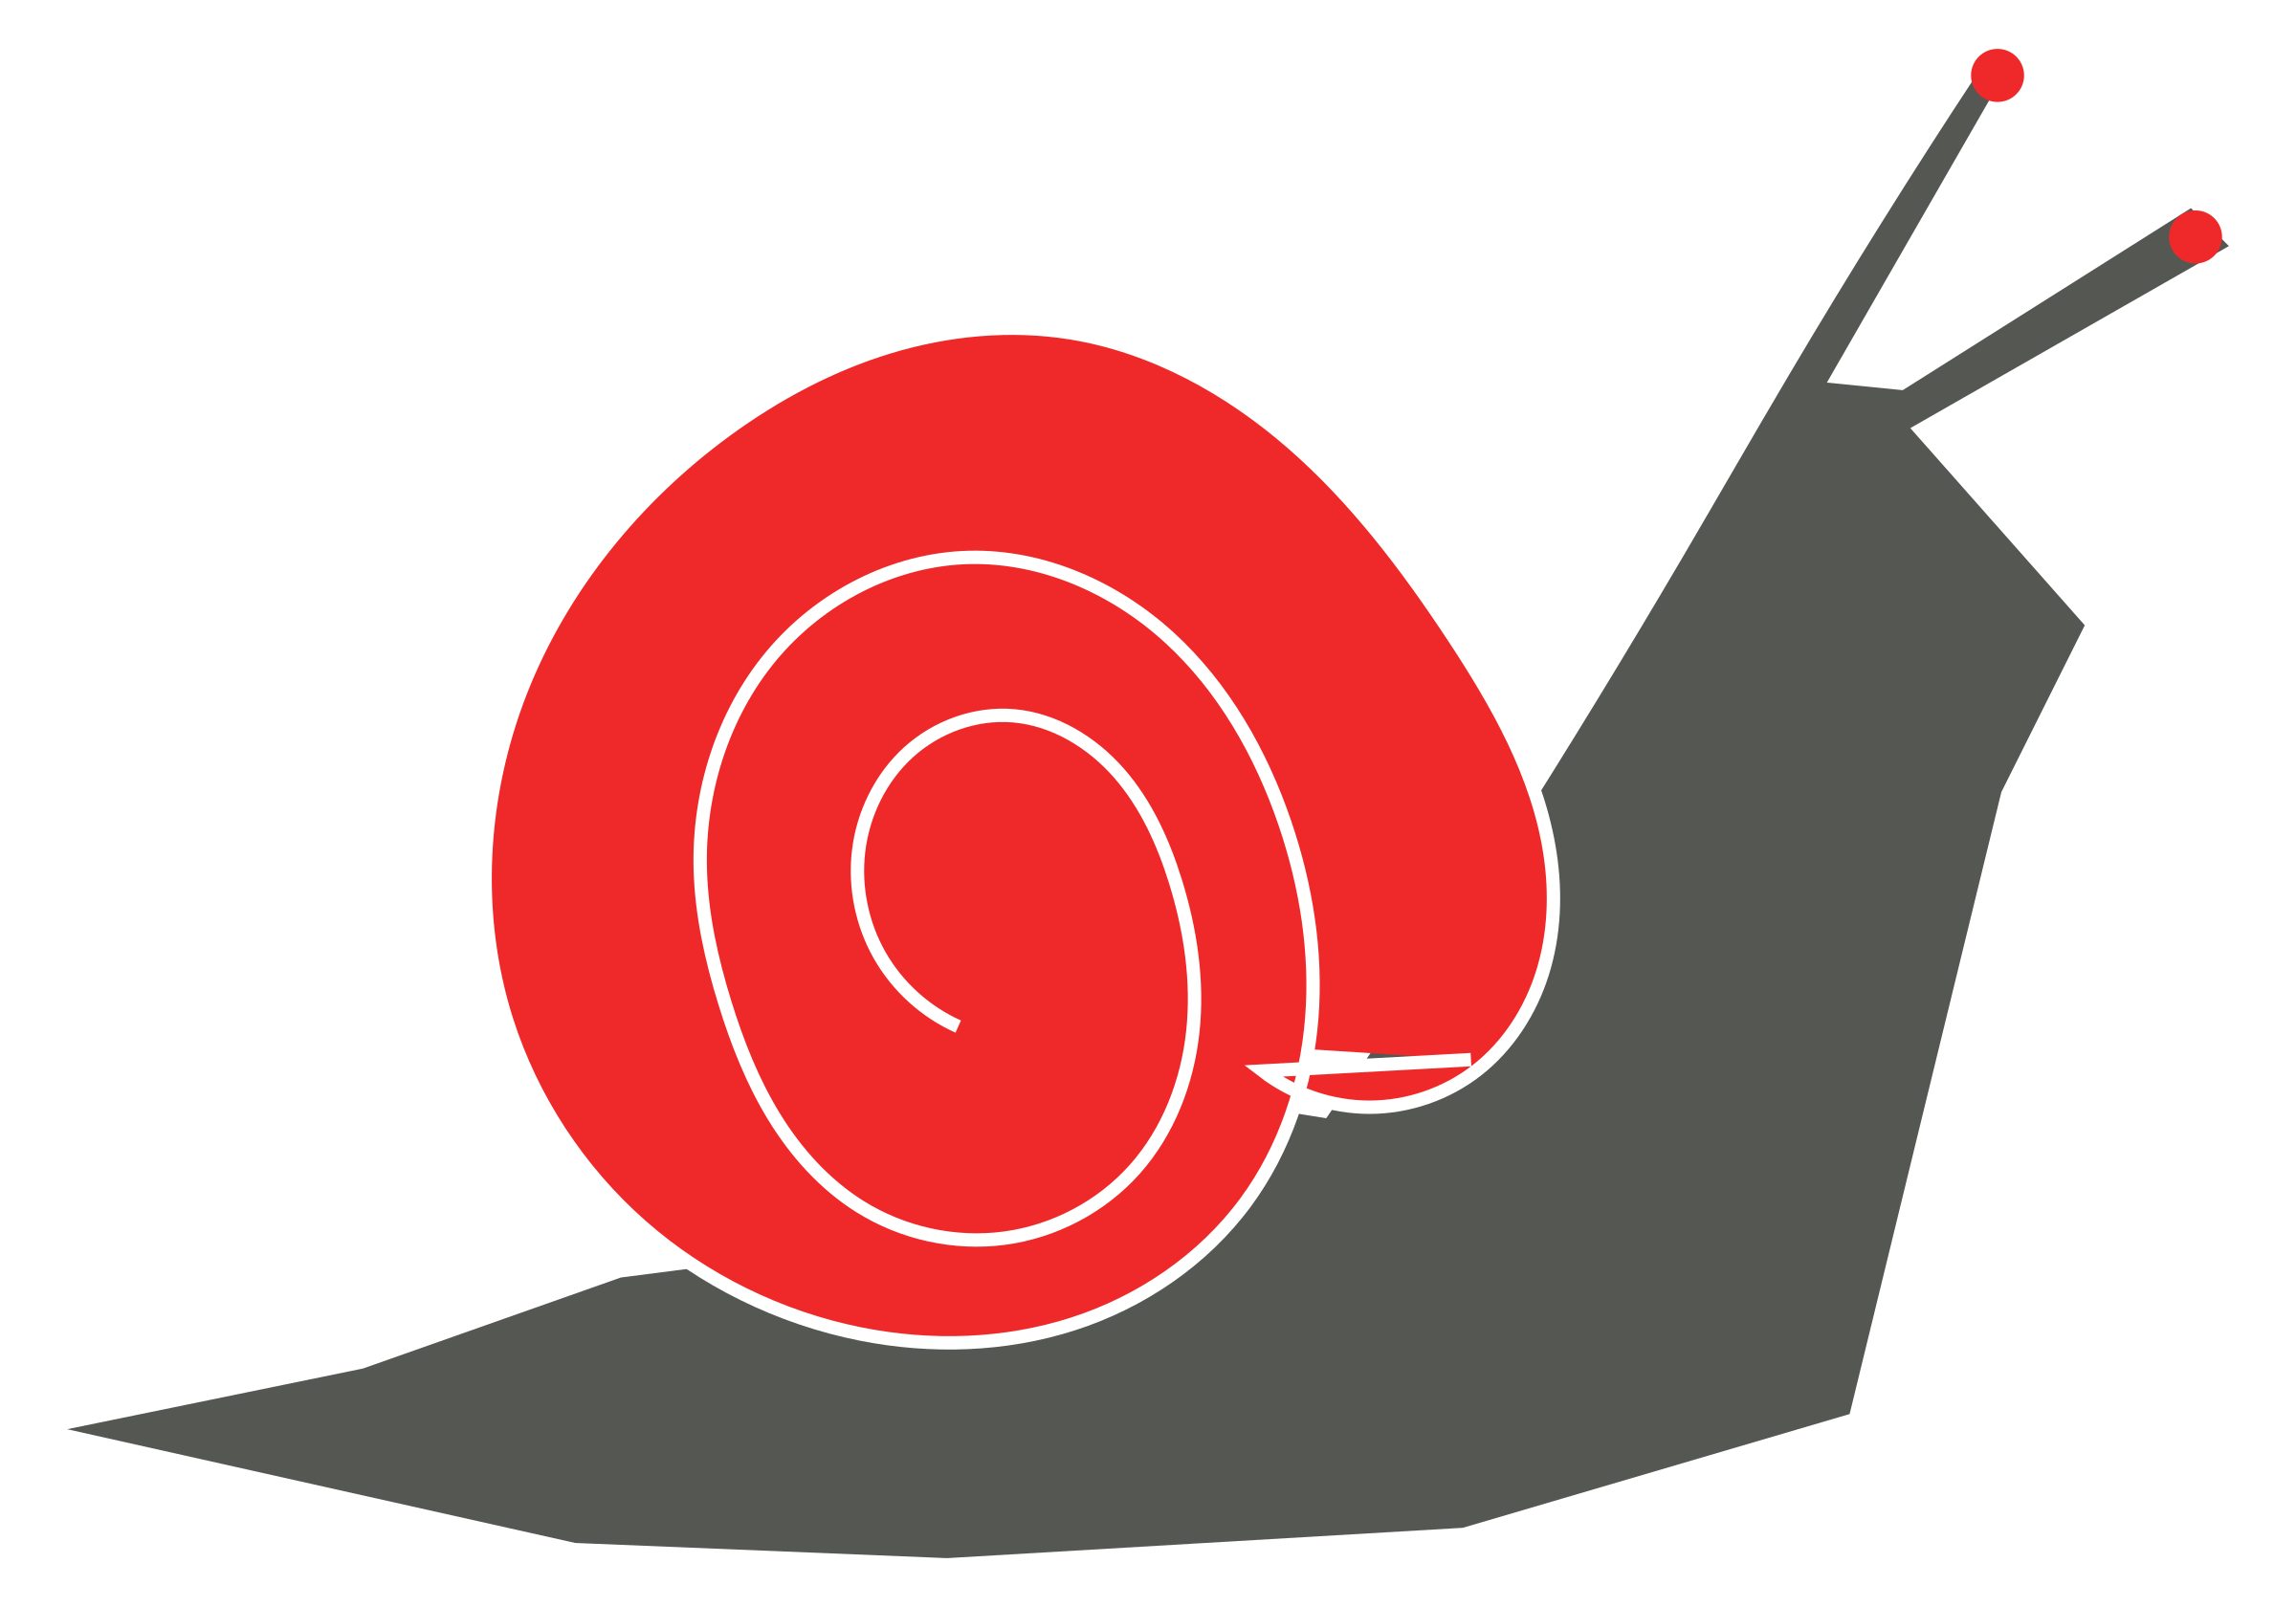 Red clipart snail #9